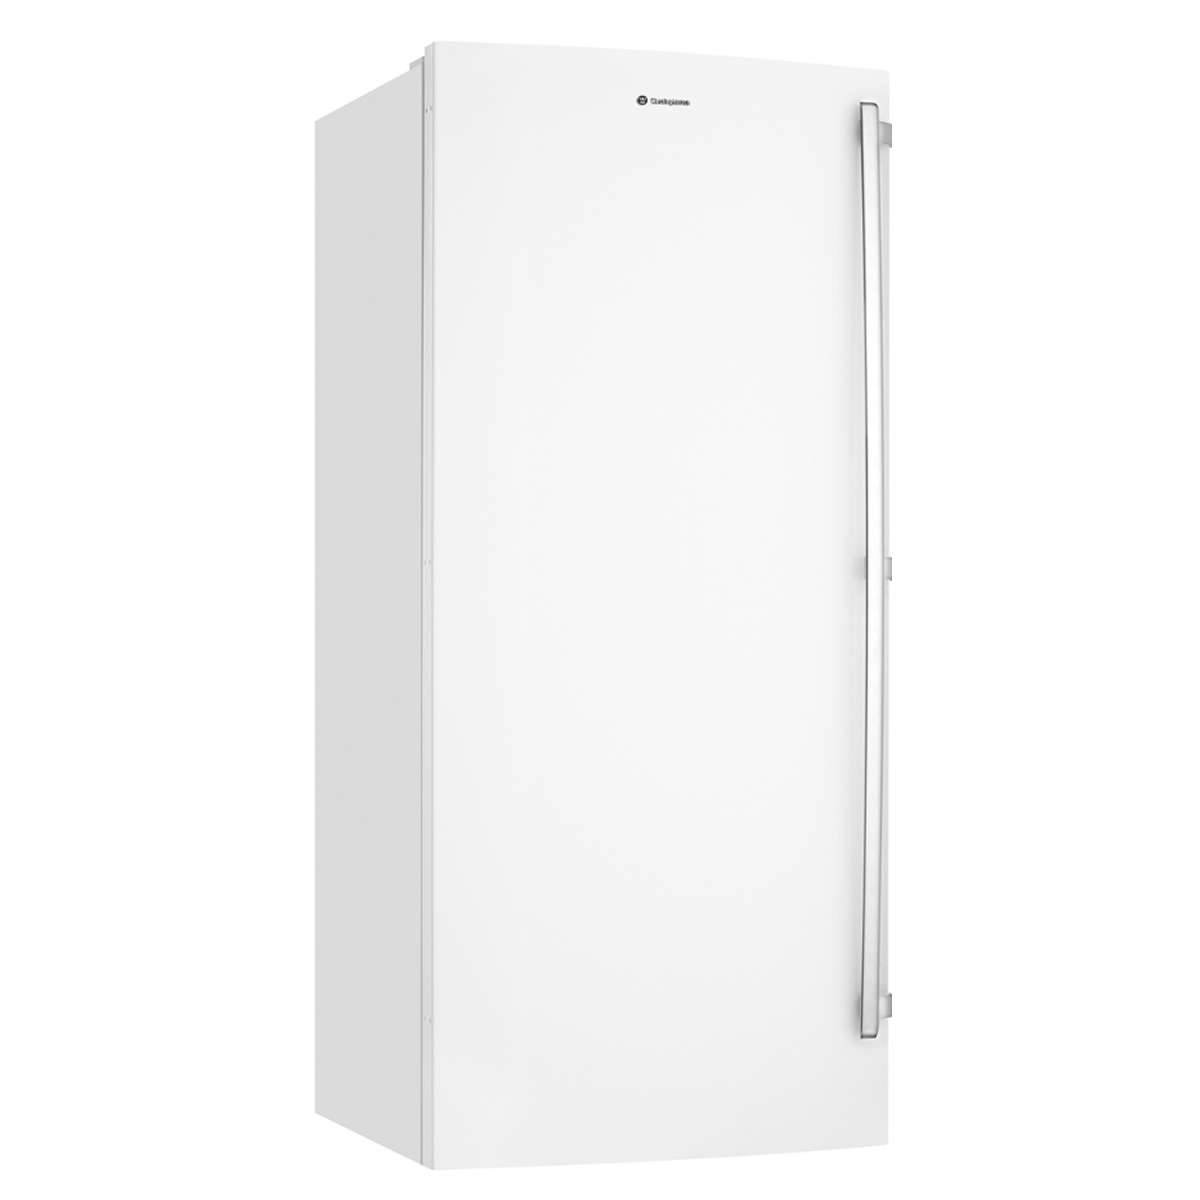 Westinghouse WFB4204WA 425L Upright Freezer